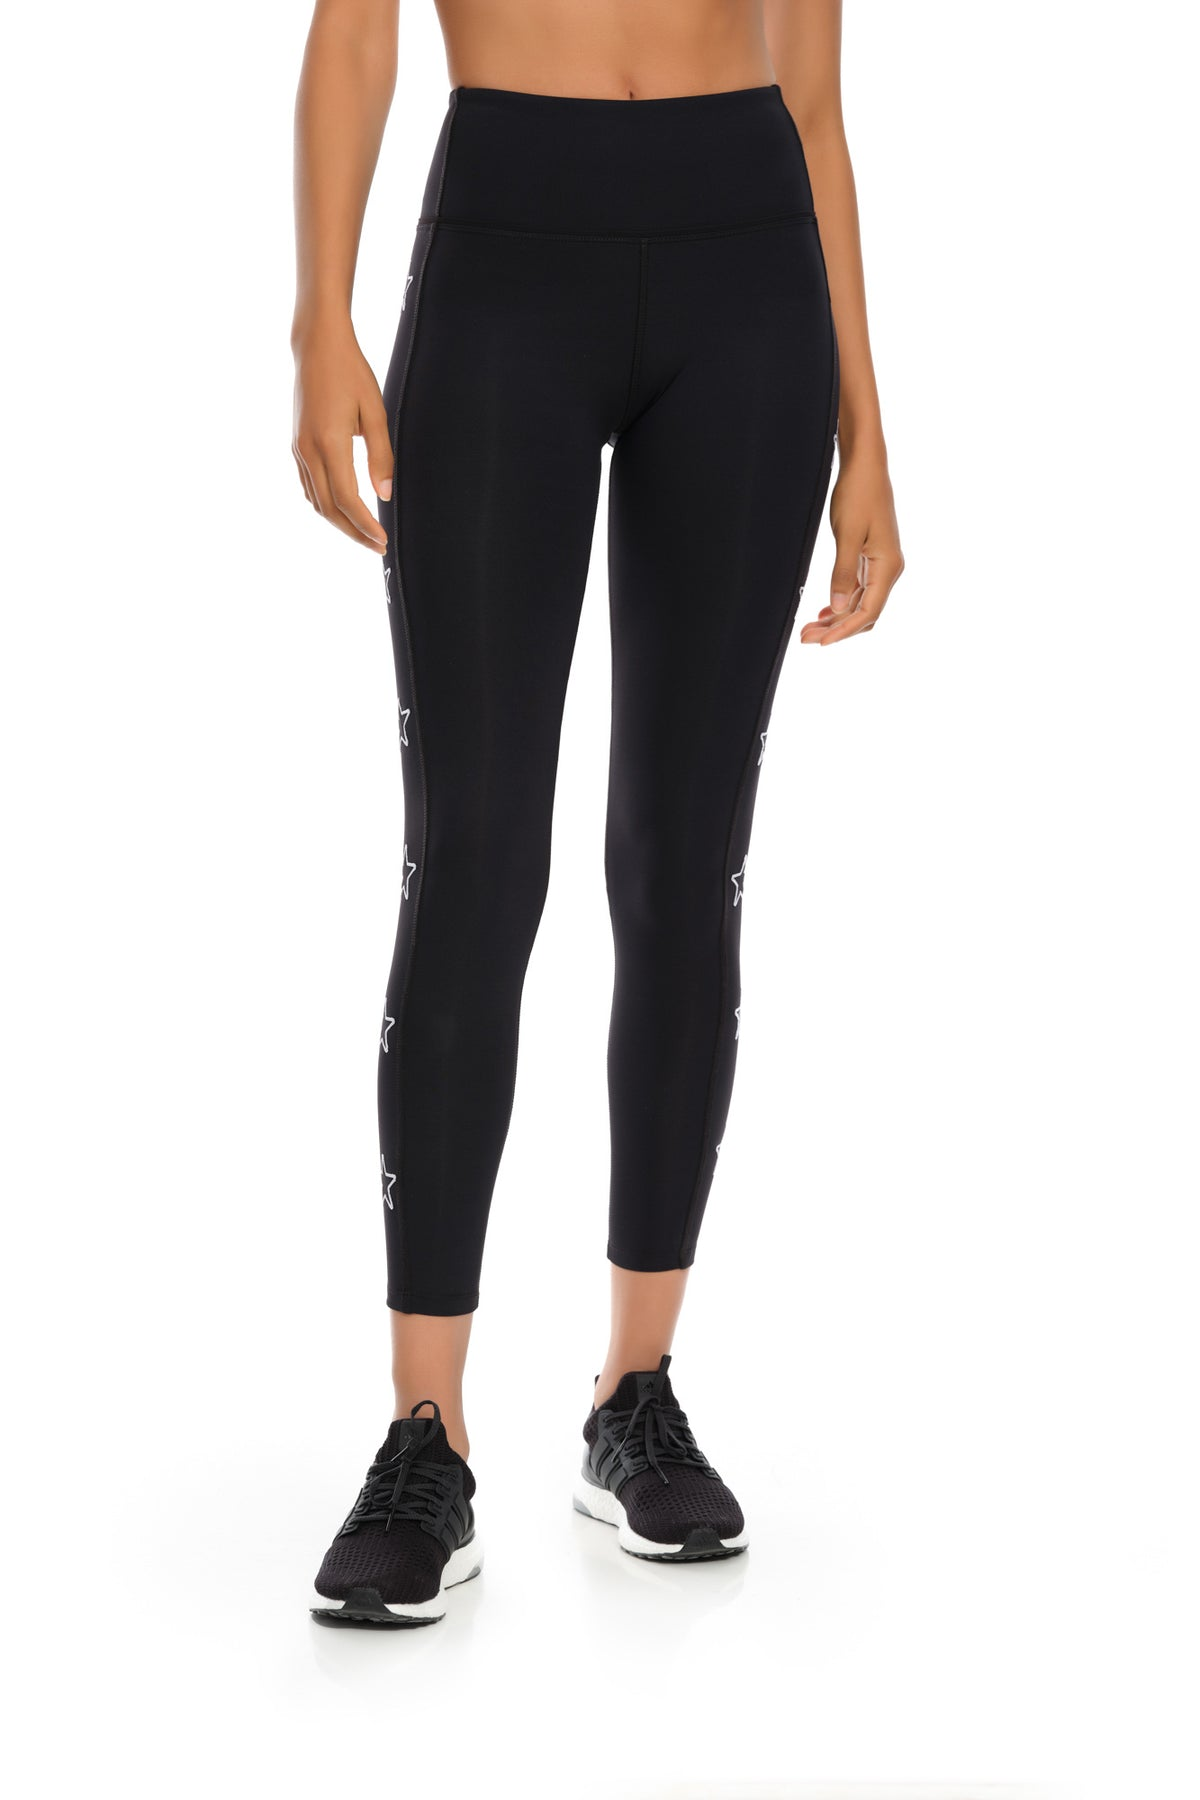 Ginger All Star Legging